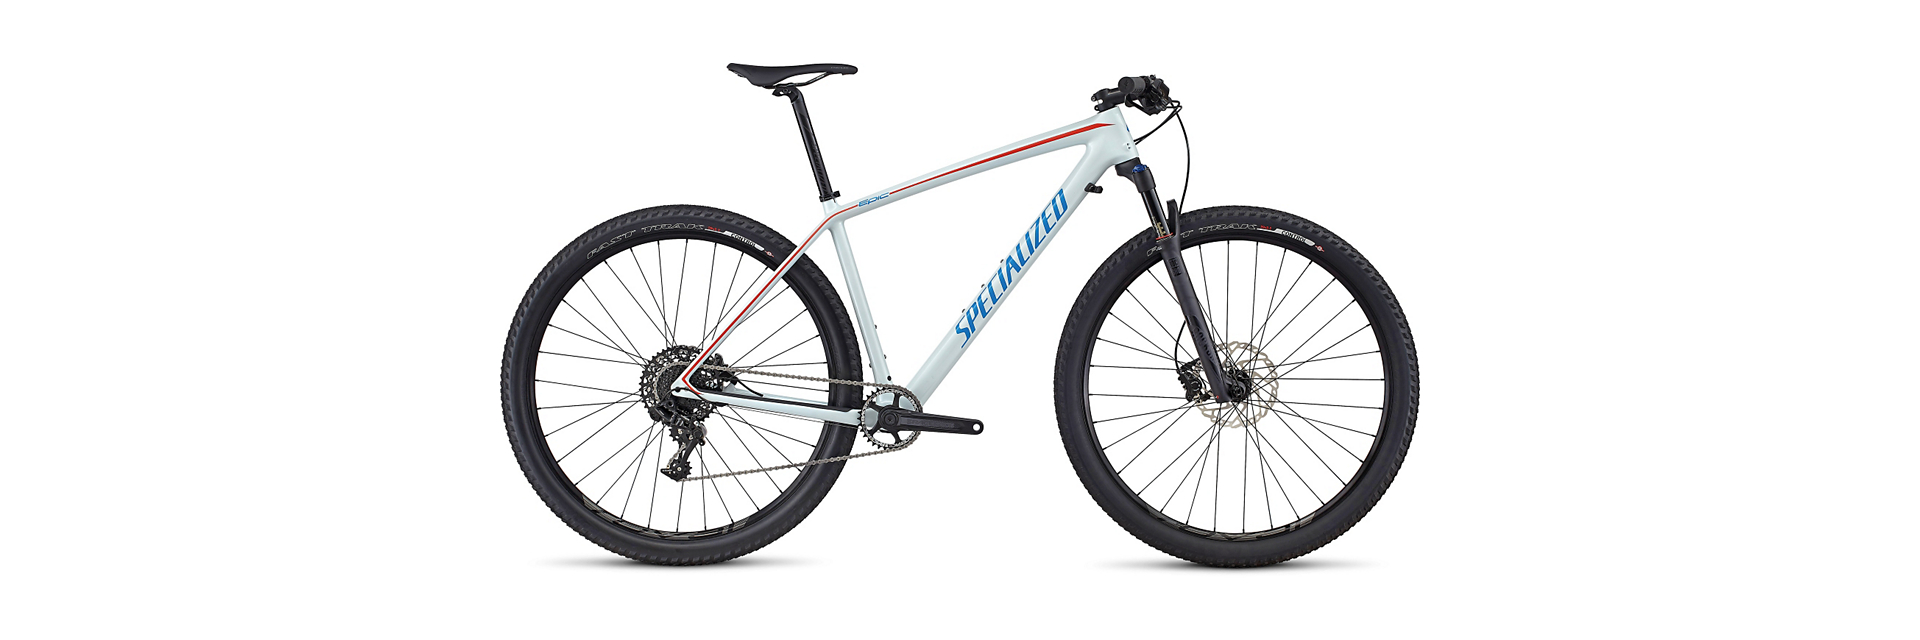 2017 Specialized epic HT comp.jpg